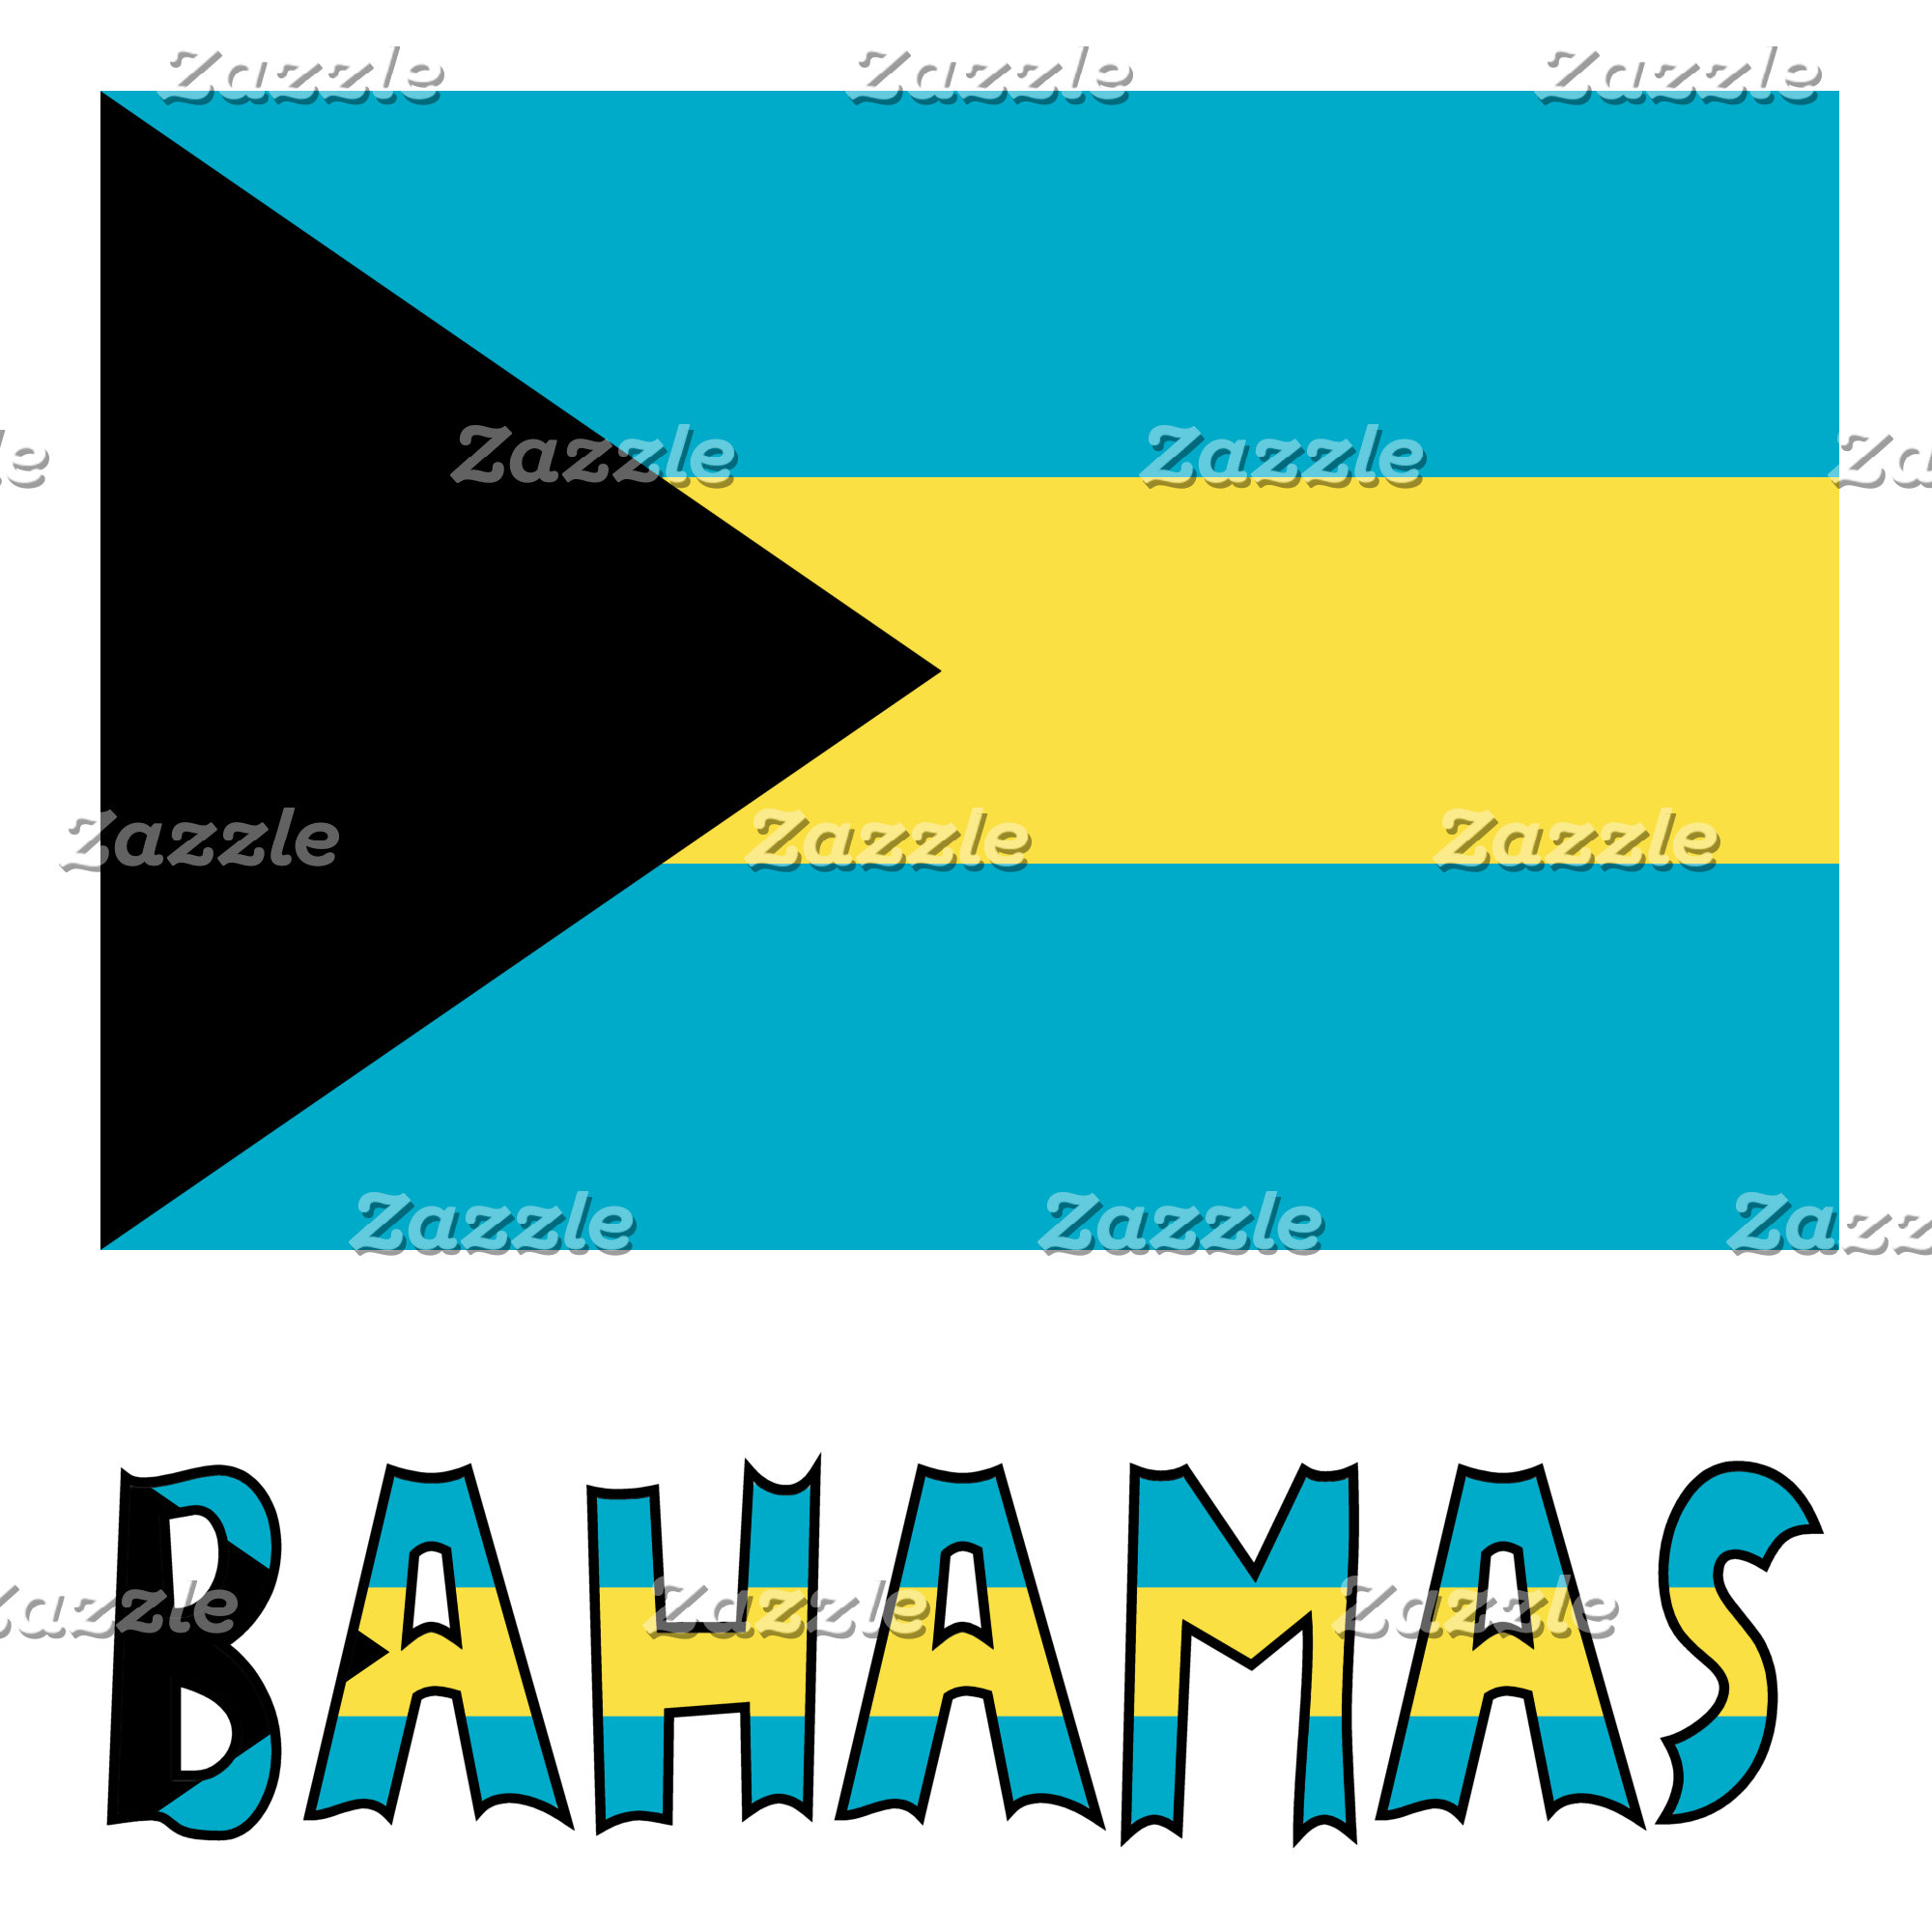 Bahaman Flag and Bahamas